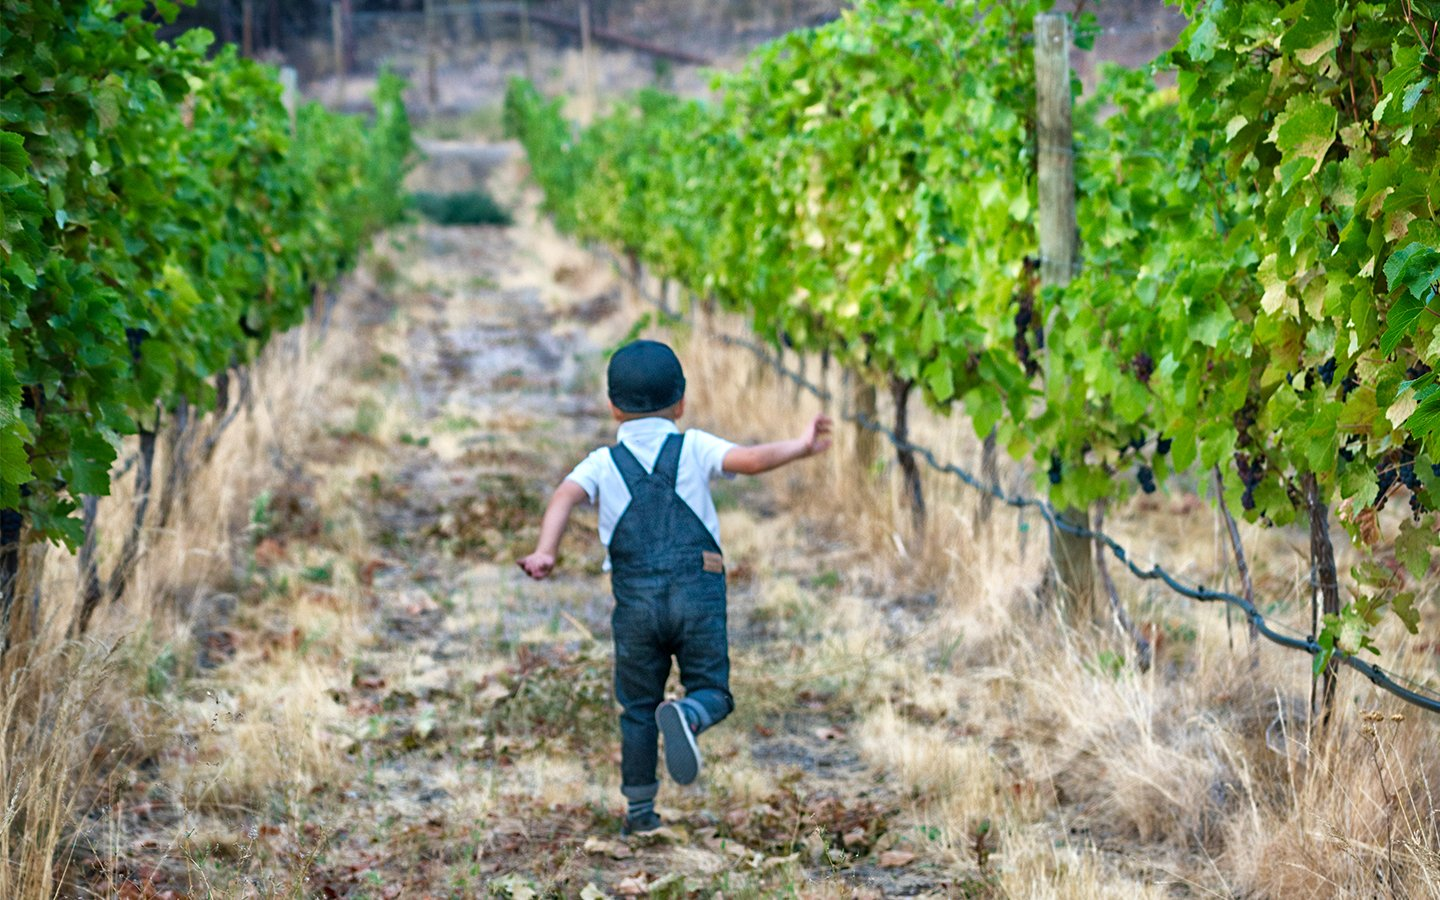 http://spatulamedia.ca/wp-content/uploads/2019/05/hugh-running-through-the-niche-vineyard.jpg